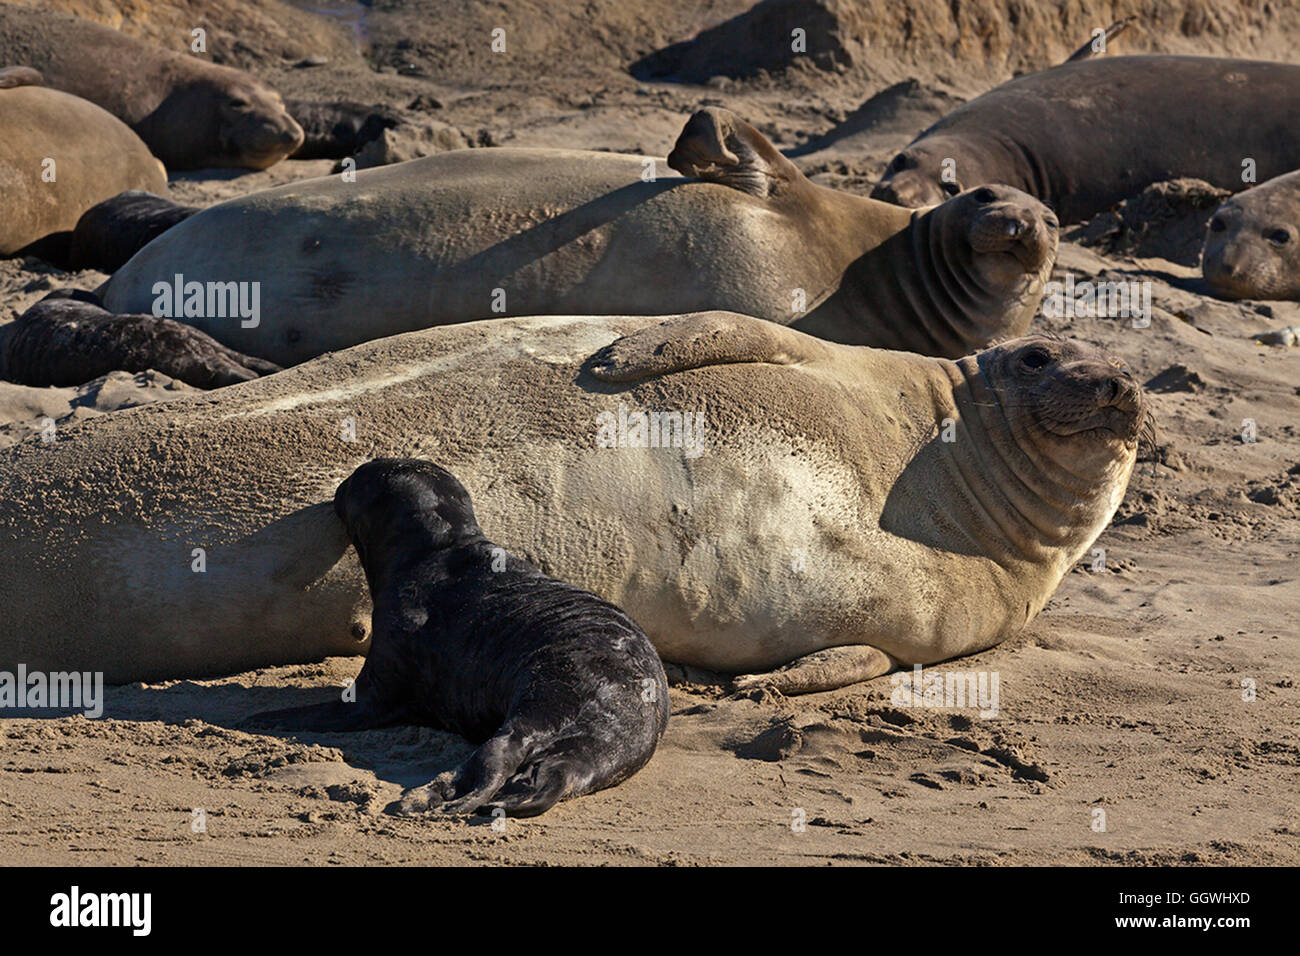 A female ELEPHANT SEAL (Mirounga angustirostris) with her nursing pup on the beach at ANO NUEVO STATE PARK - CALIFORNIA - Stock Image